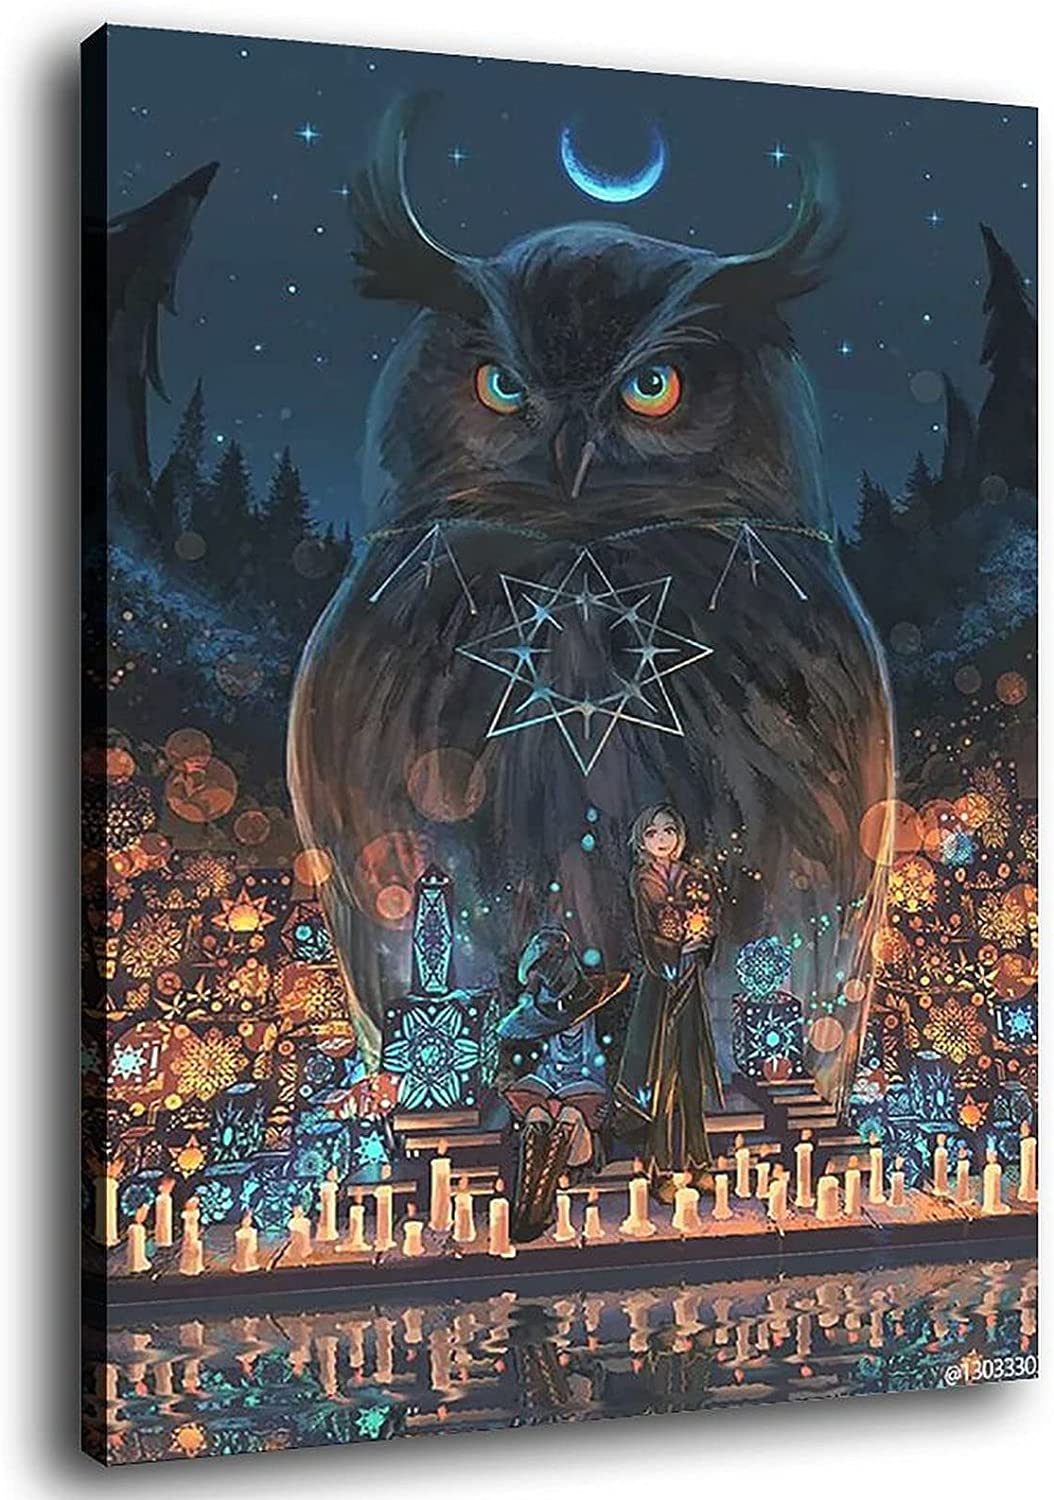 LEODO Halloween Poster Fantasy Owl Canvas House W and Popular standard Art Fort Worth Mall